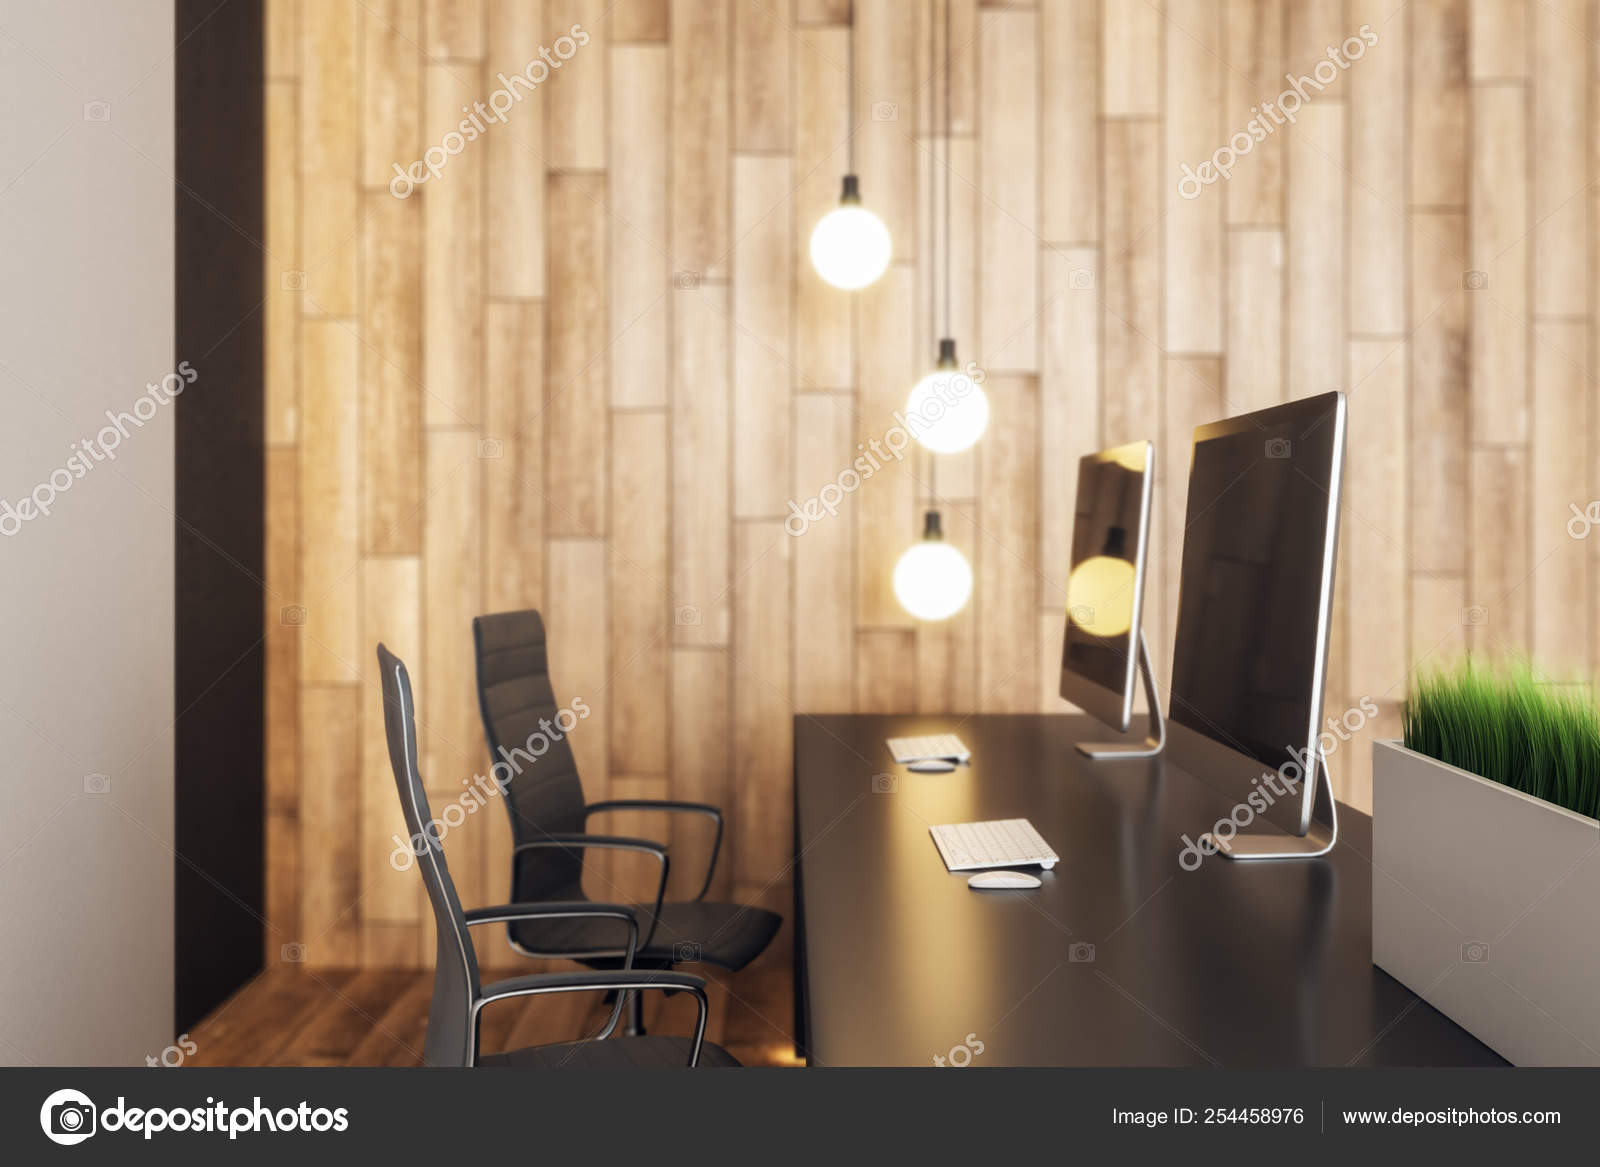 Modern Reception Desk Stock Photo C Peshkov 254458976